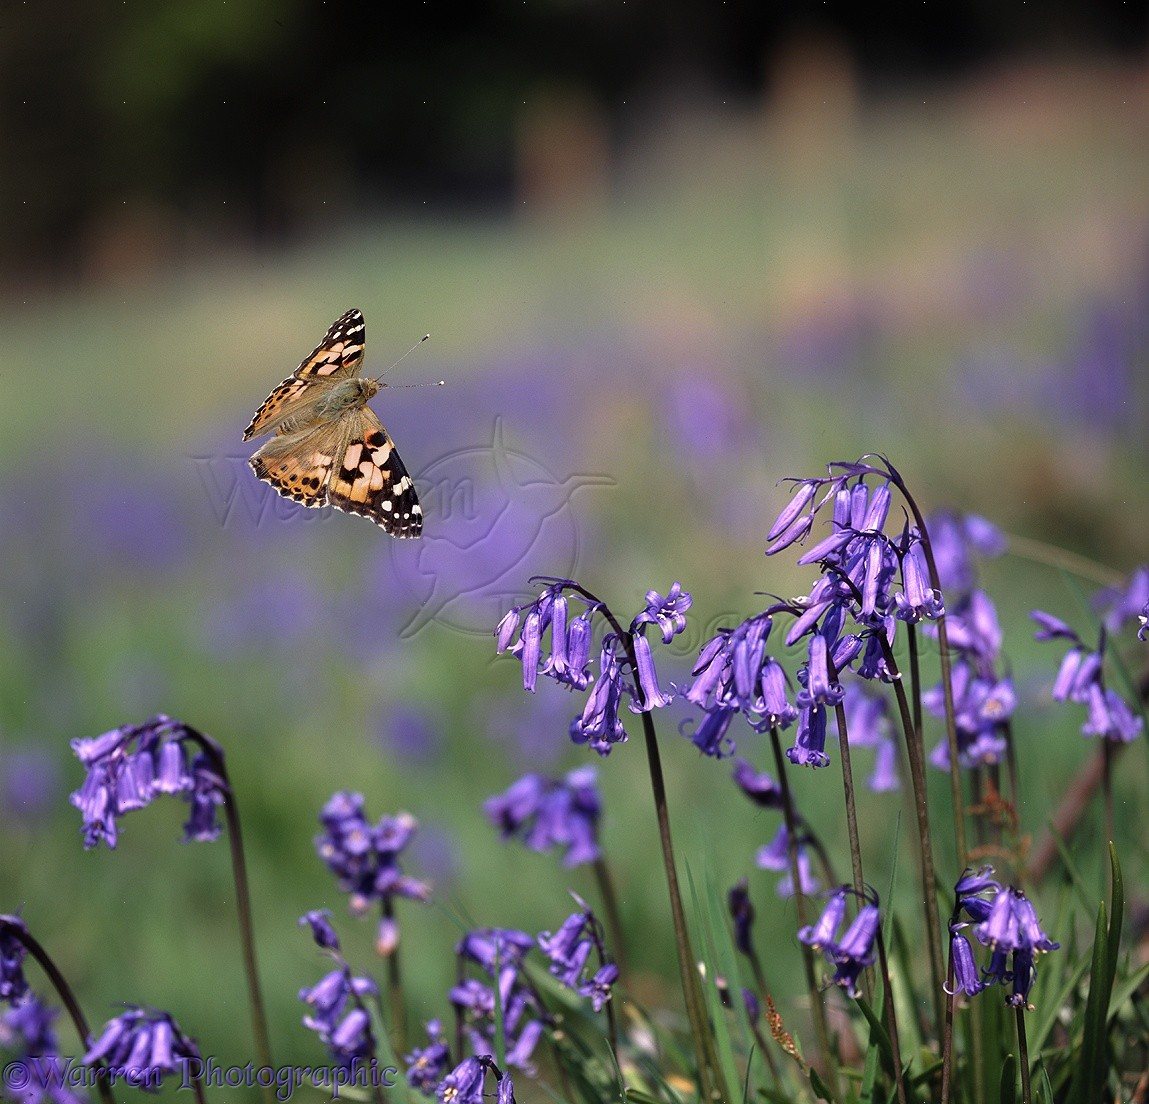 Wasp >> Painted Lady Butterfly flying over bluebell flowers photo ...